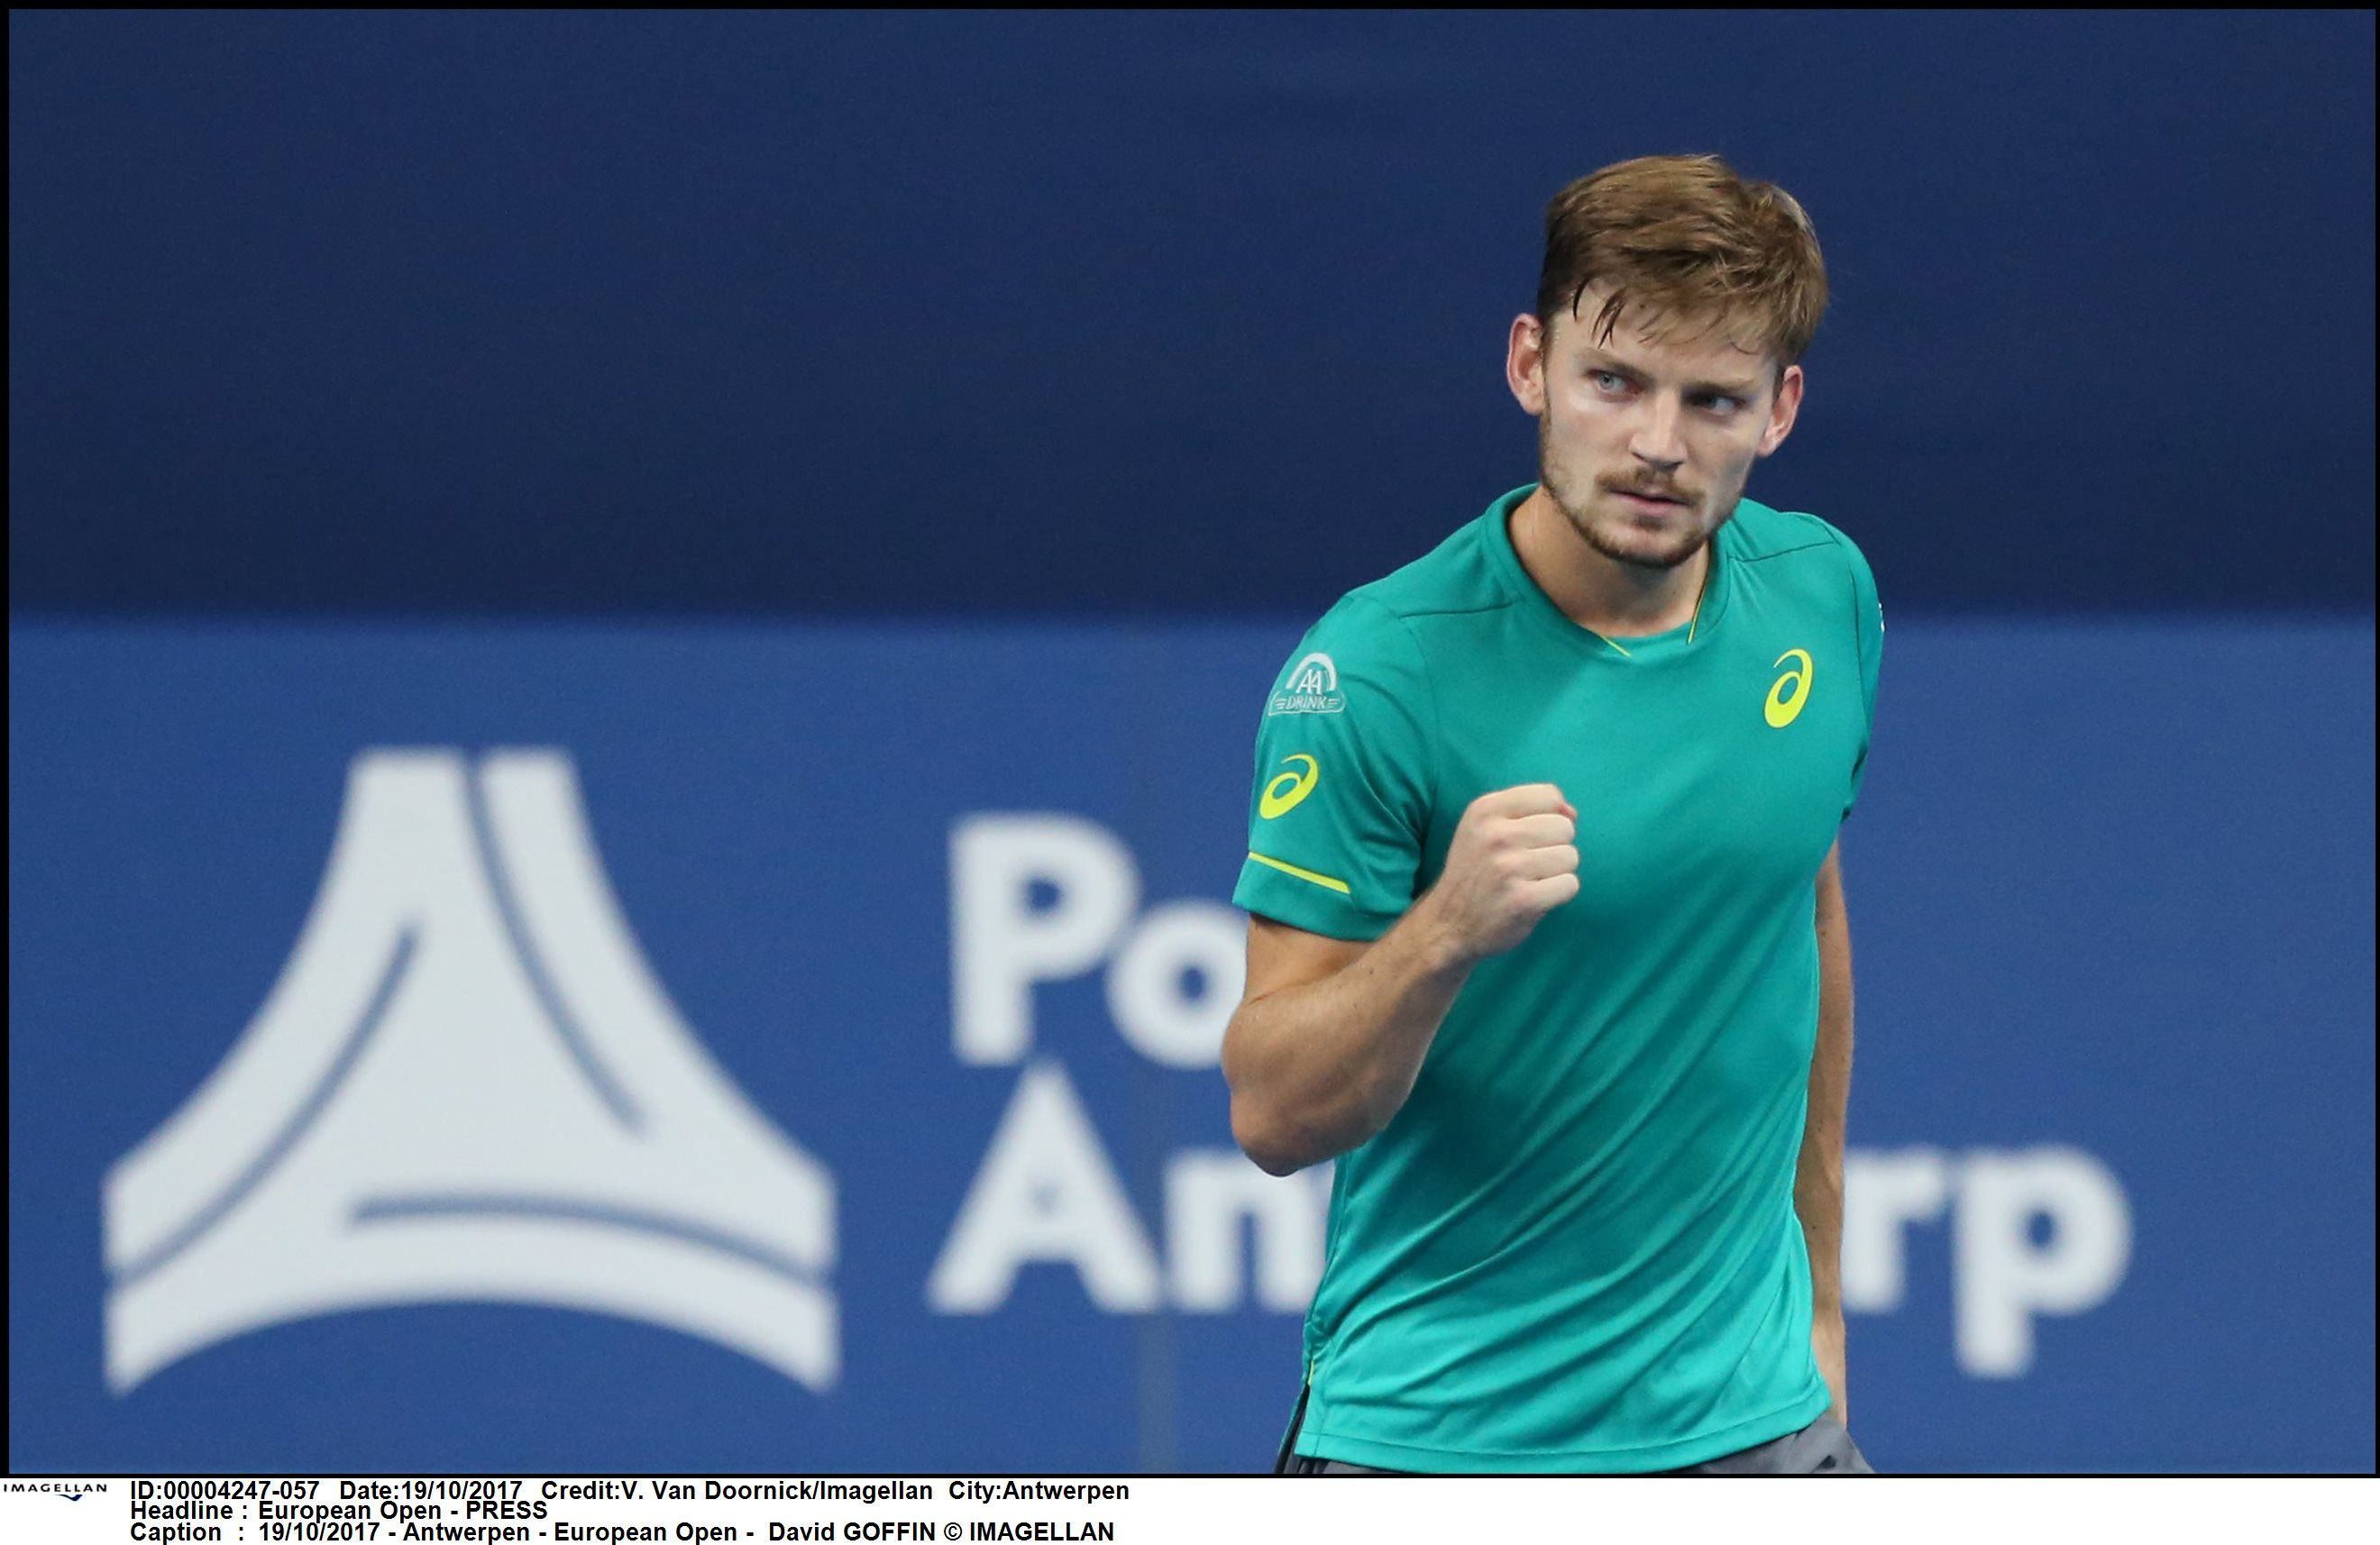 19/10/2017 - Antwerpen - European Open - David GOFFIN © IMAGELLAN